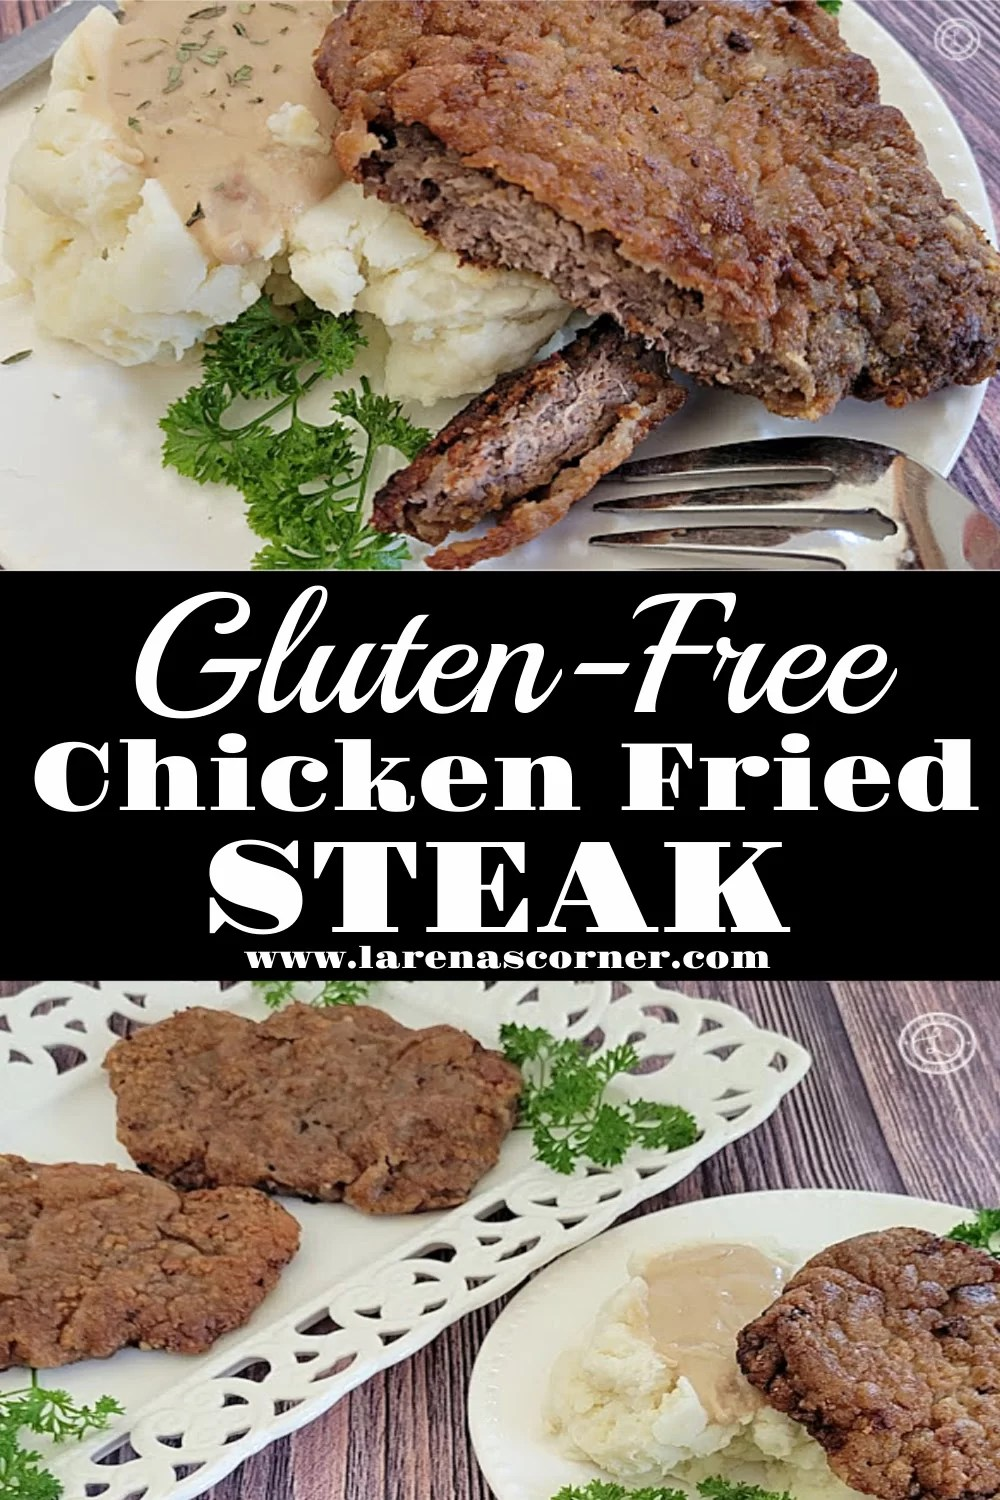 Gluten-Free Chicken Fried Steak Collage. Has two pictures of the dish.